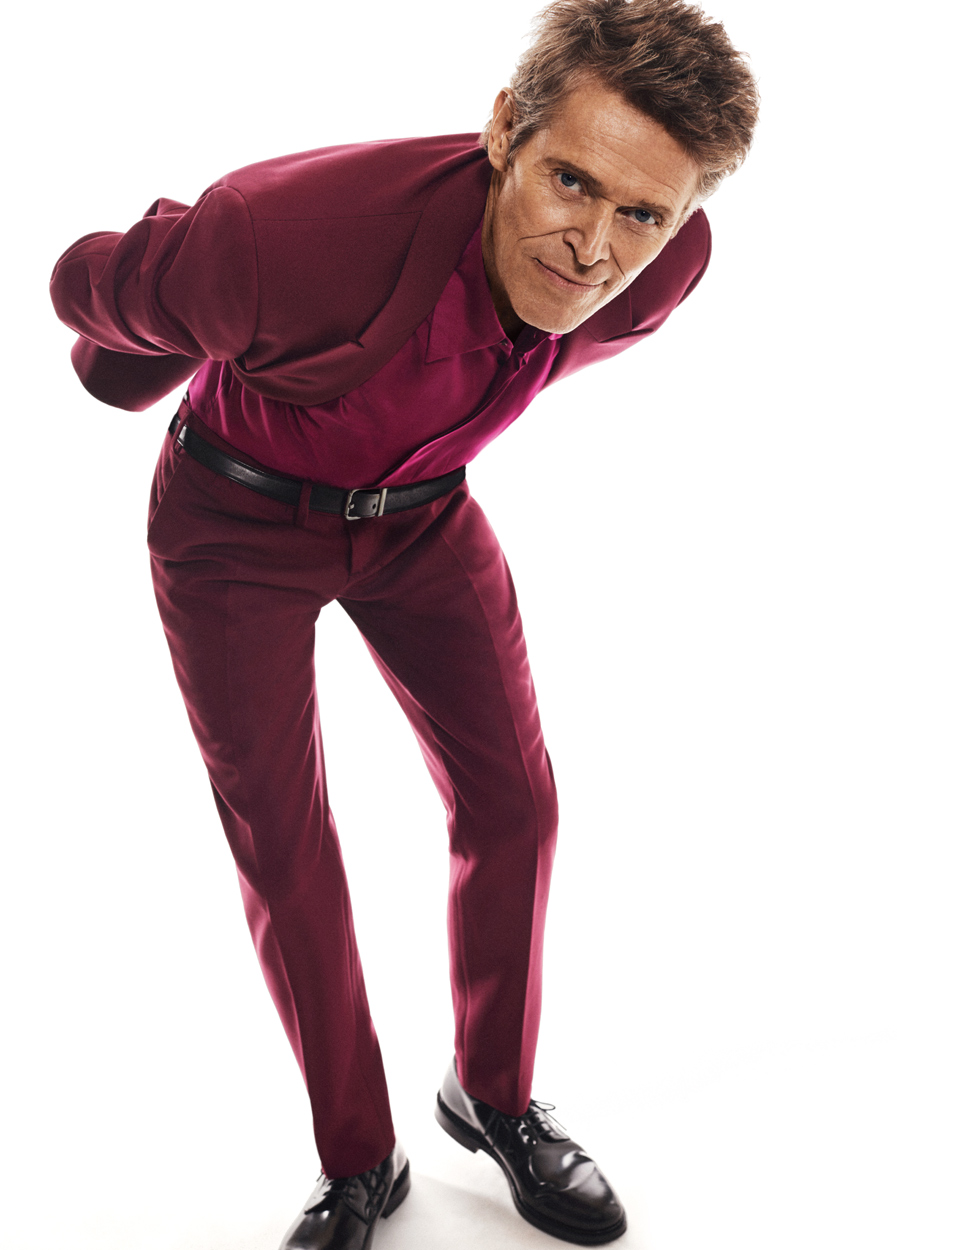 Celebrity Photographer Michael Schwartz: Willem Dafoe for Esquire Magazine